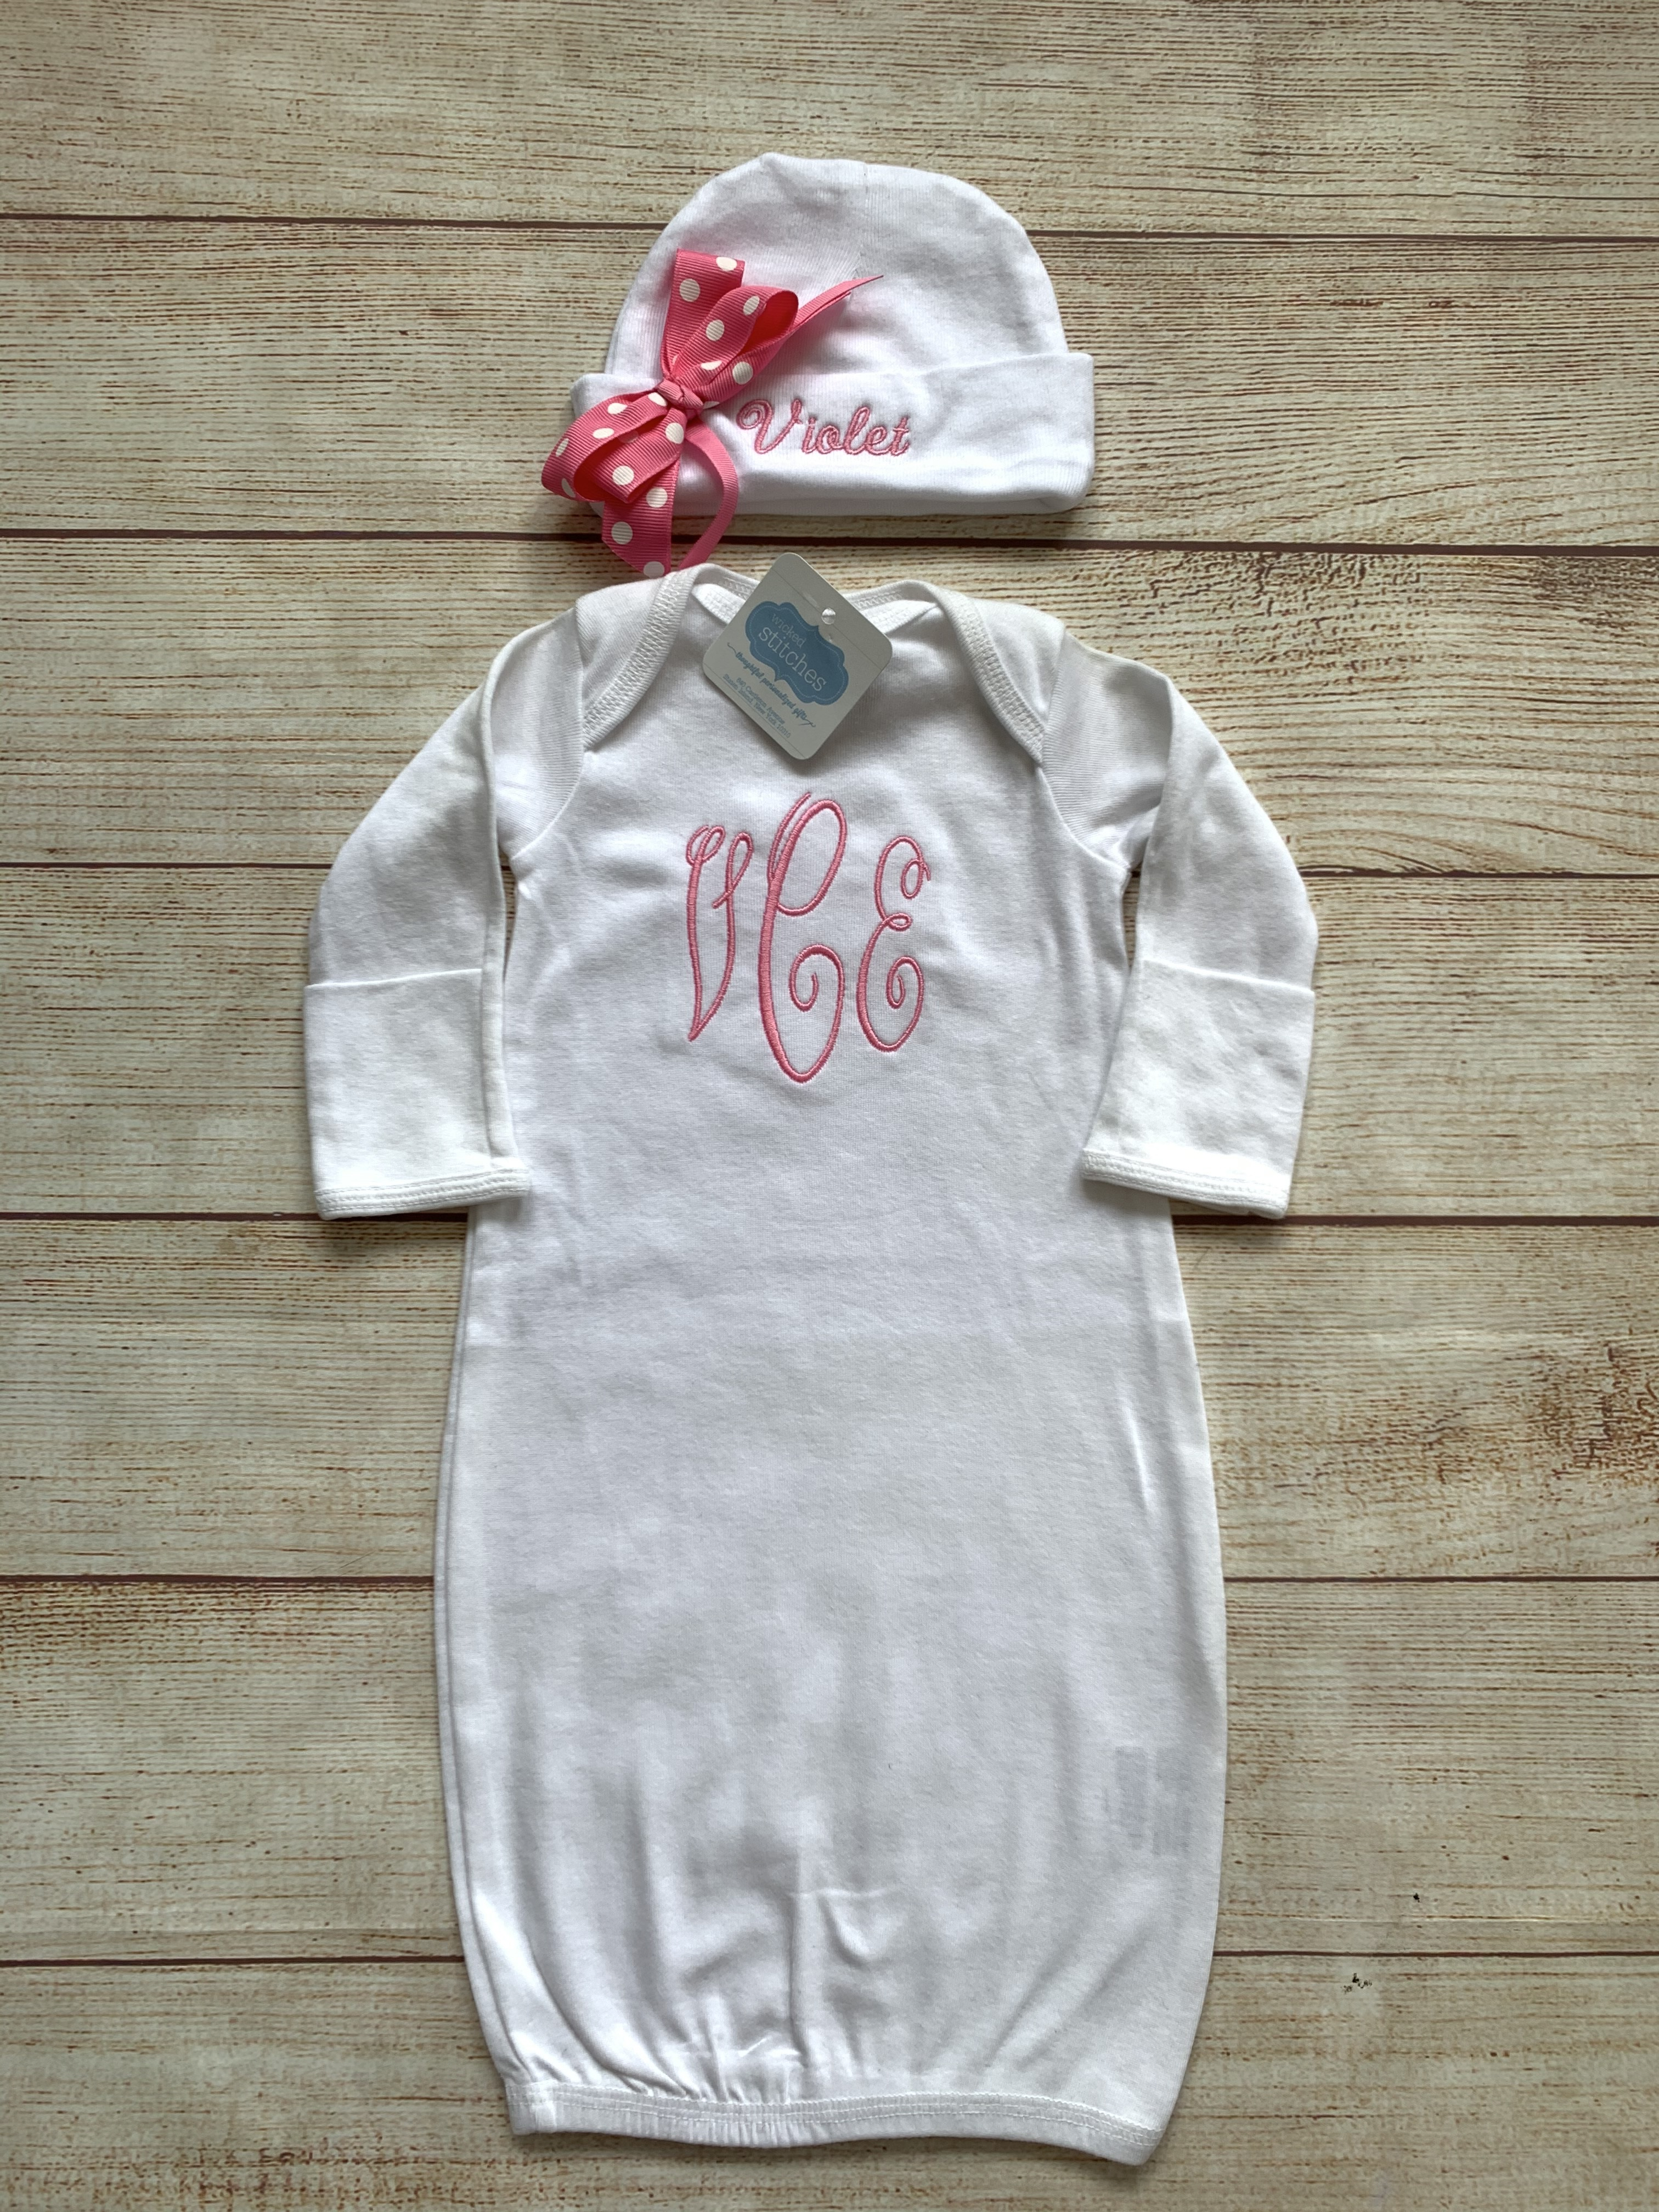 Monogram in script with matching font on cap.  Monogram initials are shown first name, last name, middle name.  Pink thread for script monogram.